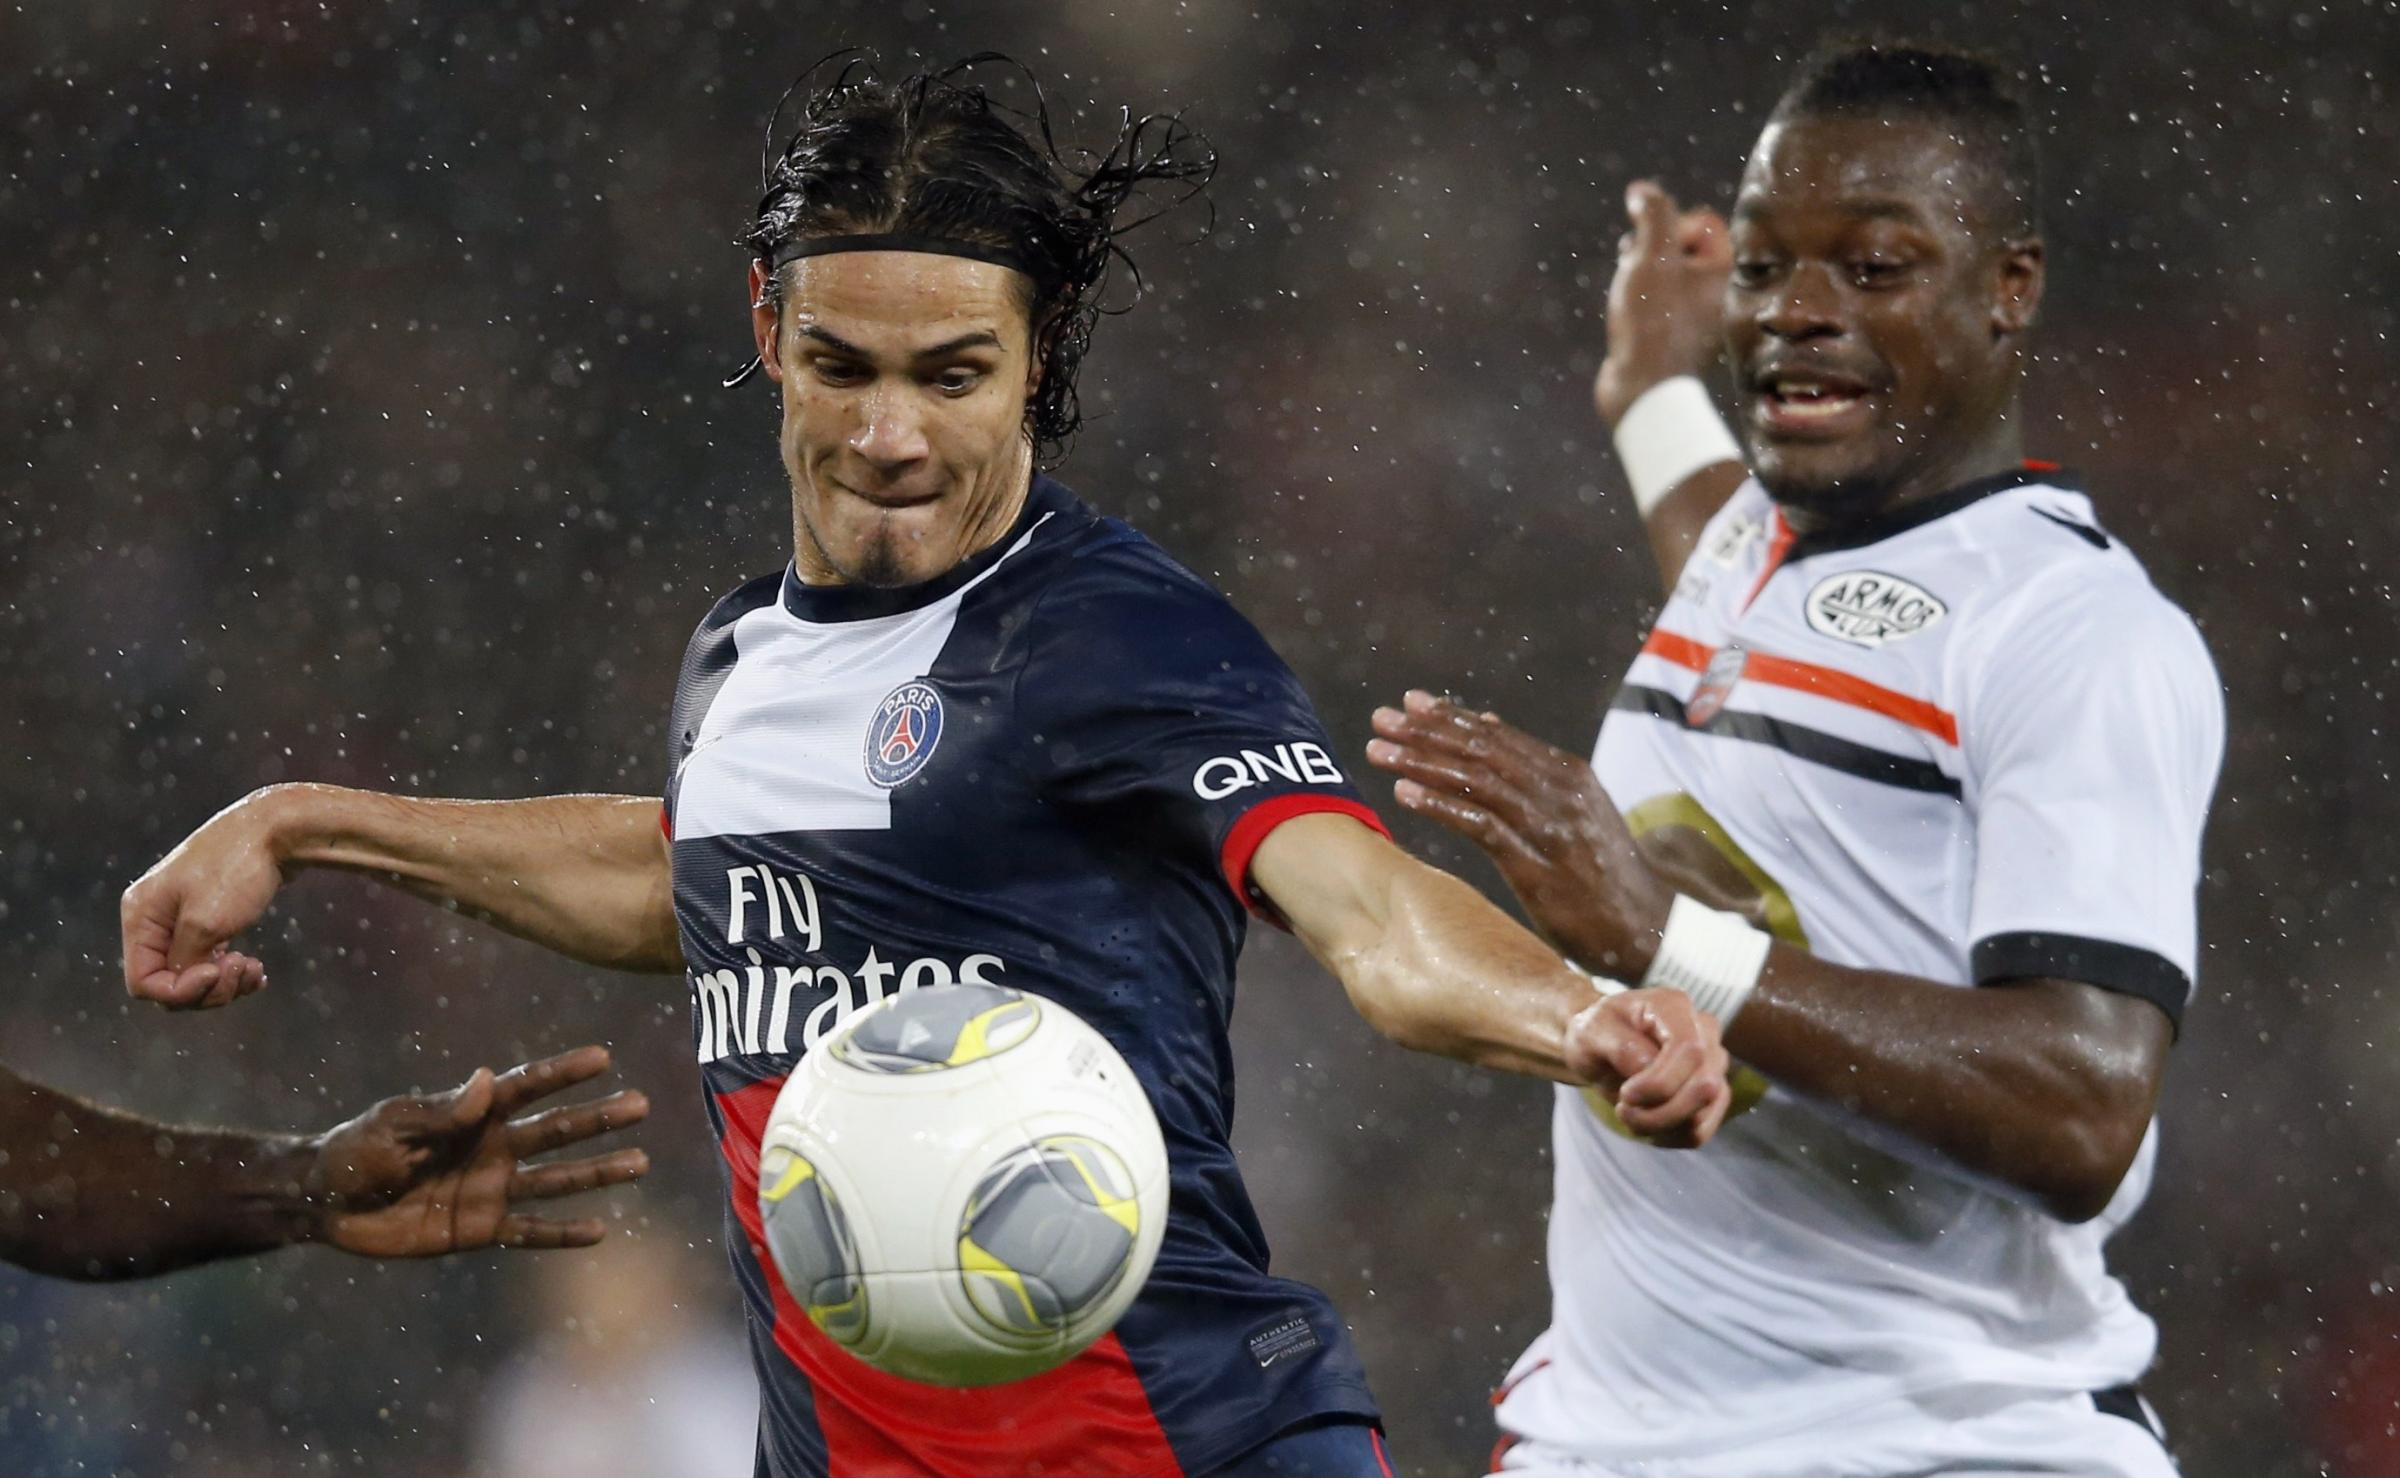 Lamine Kone (right) battles with PSG's Edinson Cavani (left). Picture: Action Images